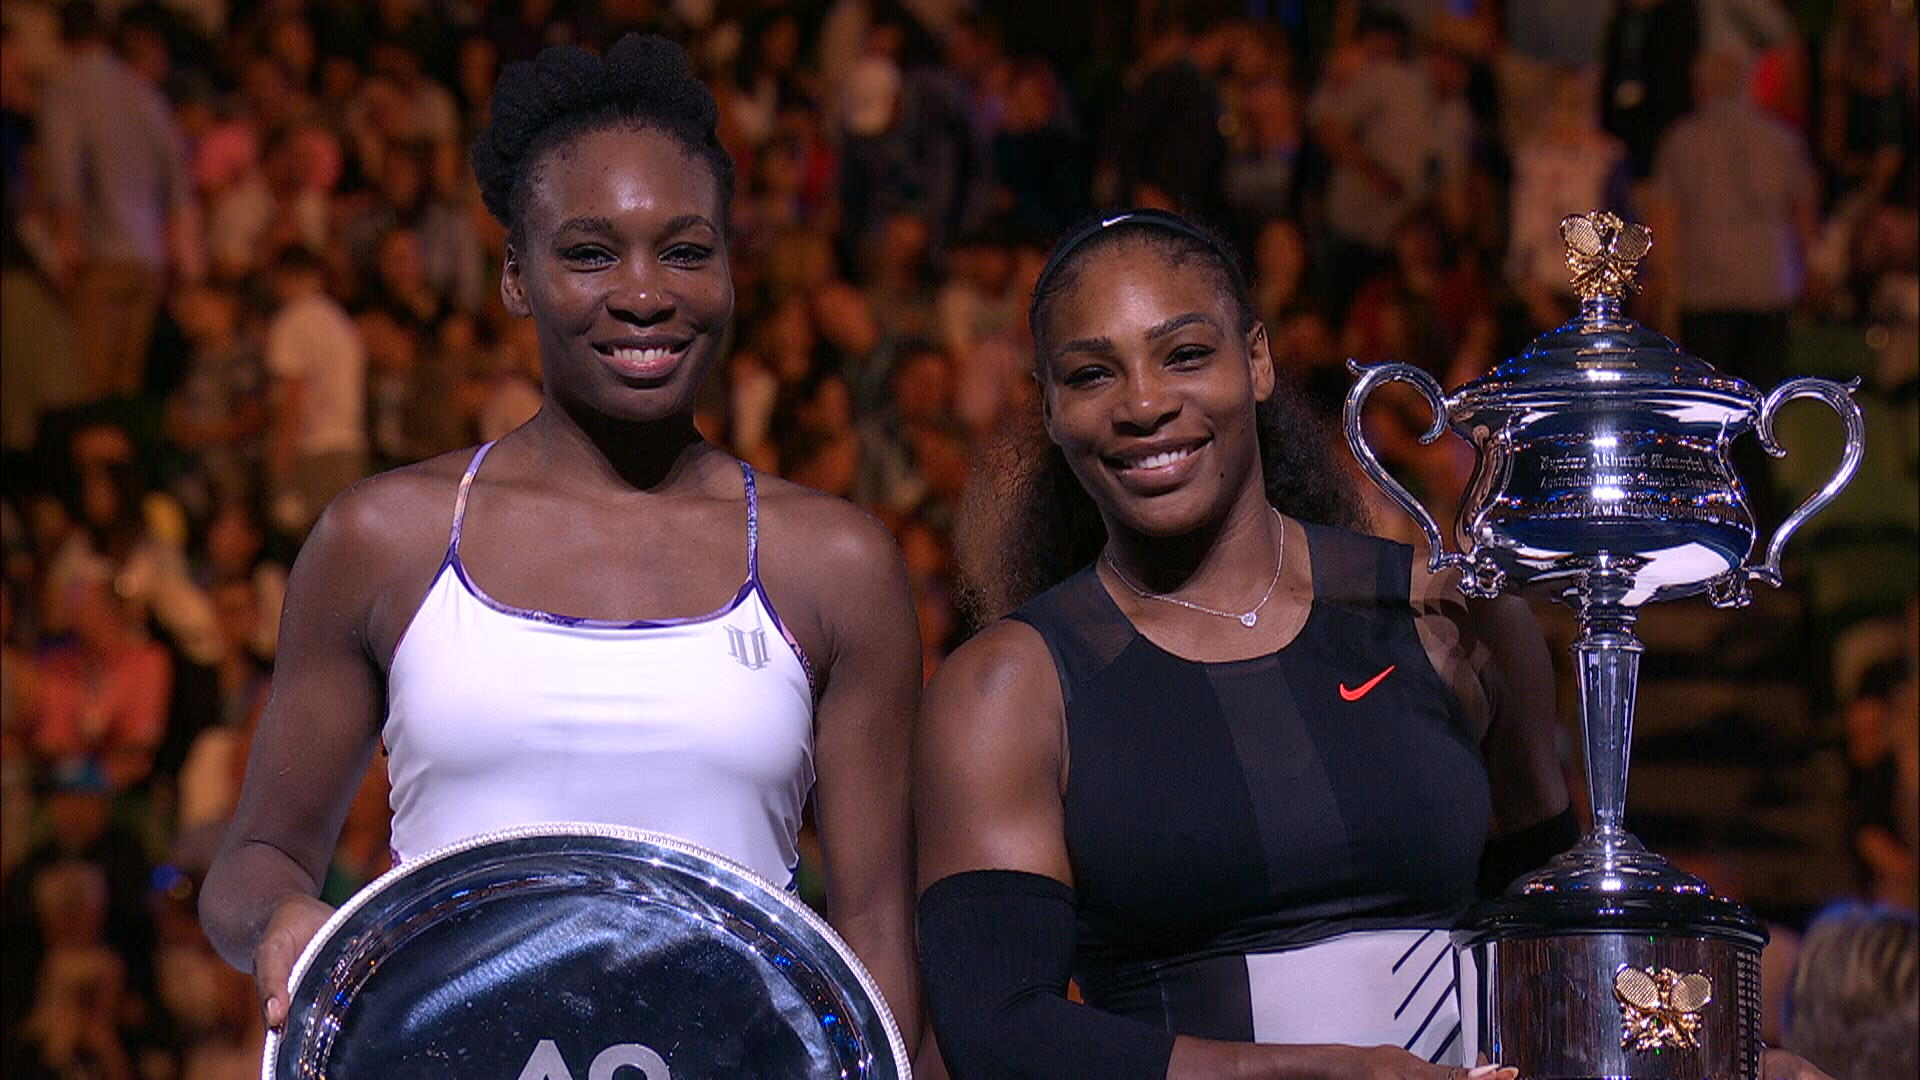 Serena Beats Venus In Aussie Open Final, Wins Record 23rd Grand Slam